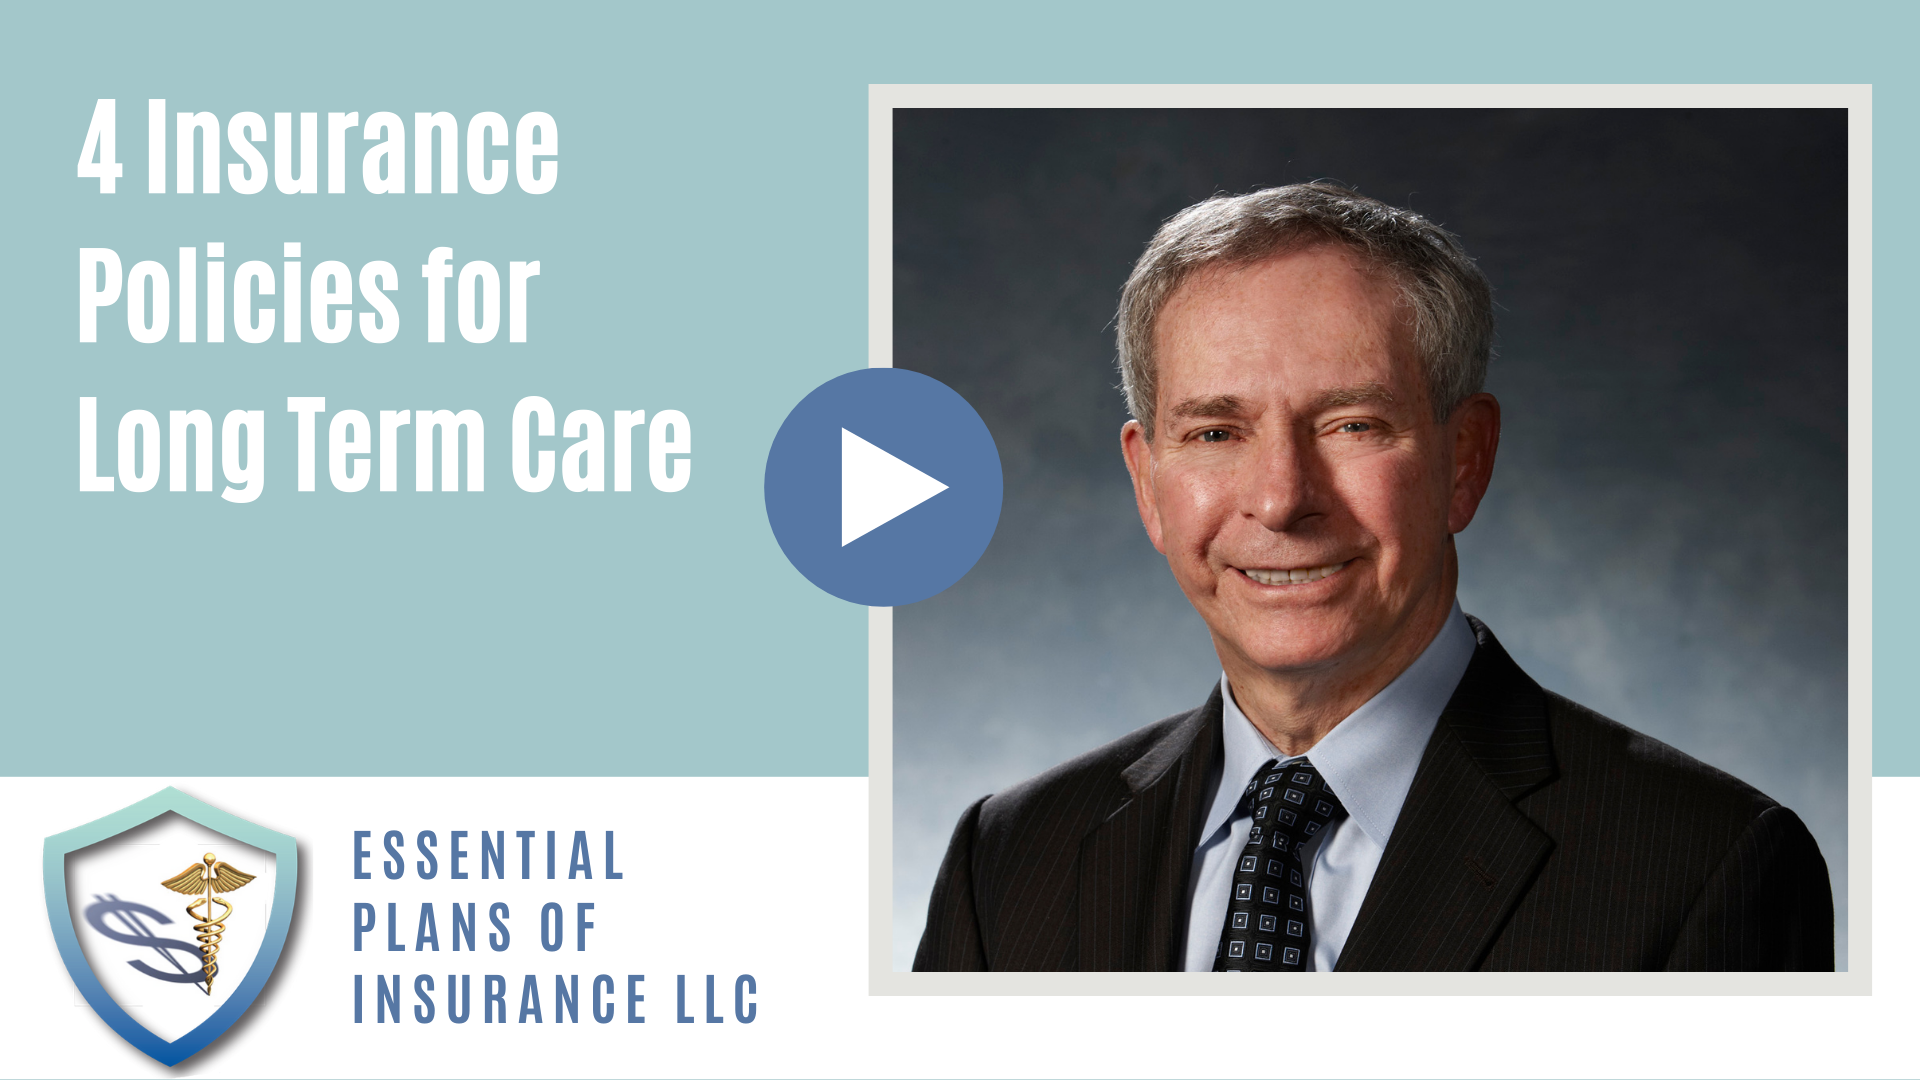 4 Insurance Policies for Long Term Care with Essential Plans of Insurance